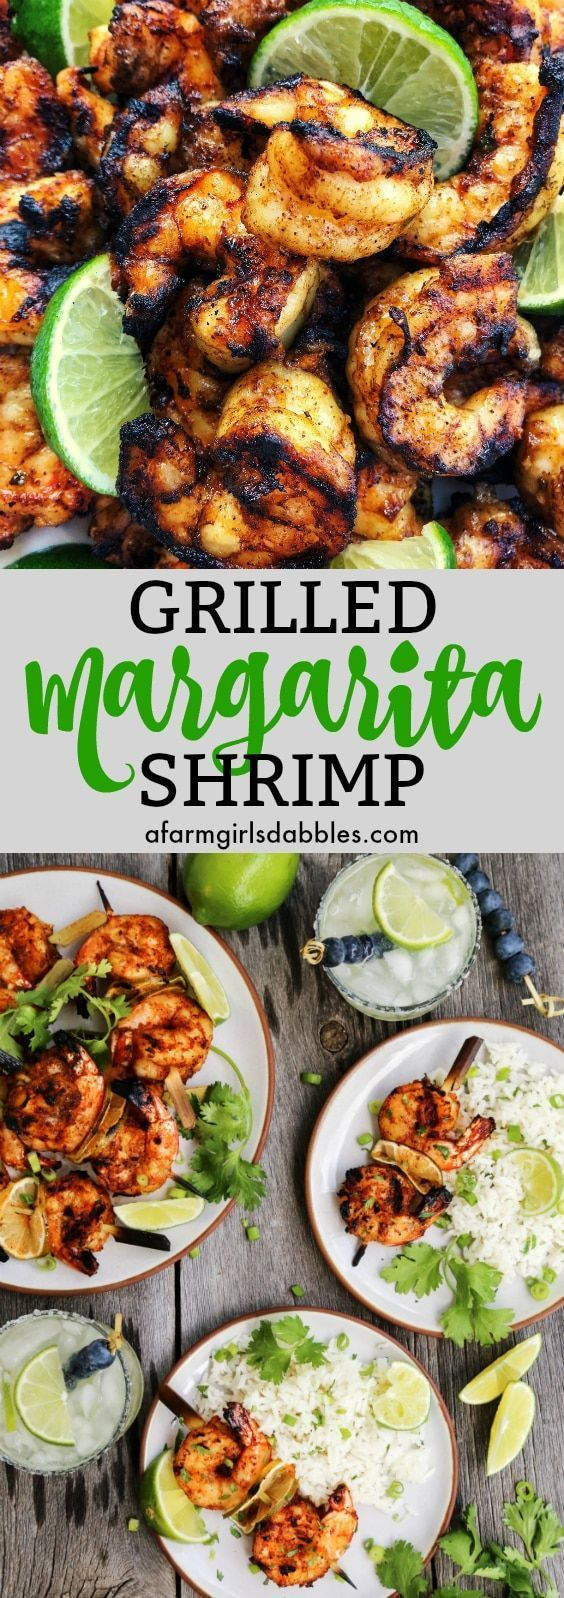 ★★★★★ 865 Ratings :  GRILLED MARGARITA SHRIMP #Instantpot #Bangbang #Shrimp #Pasta #vegan #Vegetables #Vegetablessoup #Easydinner #Healthydinner #Dessert #Choco #Keto #Cookies #Cherry #World #foodoftheworld #pasta #pastarecipes #dinner #dinnerideas #dinnerrecipes #Healthyrecipe